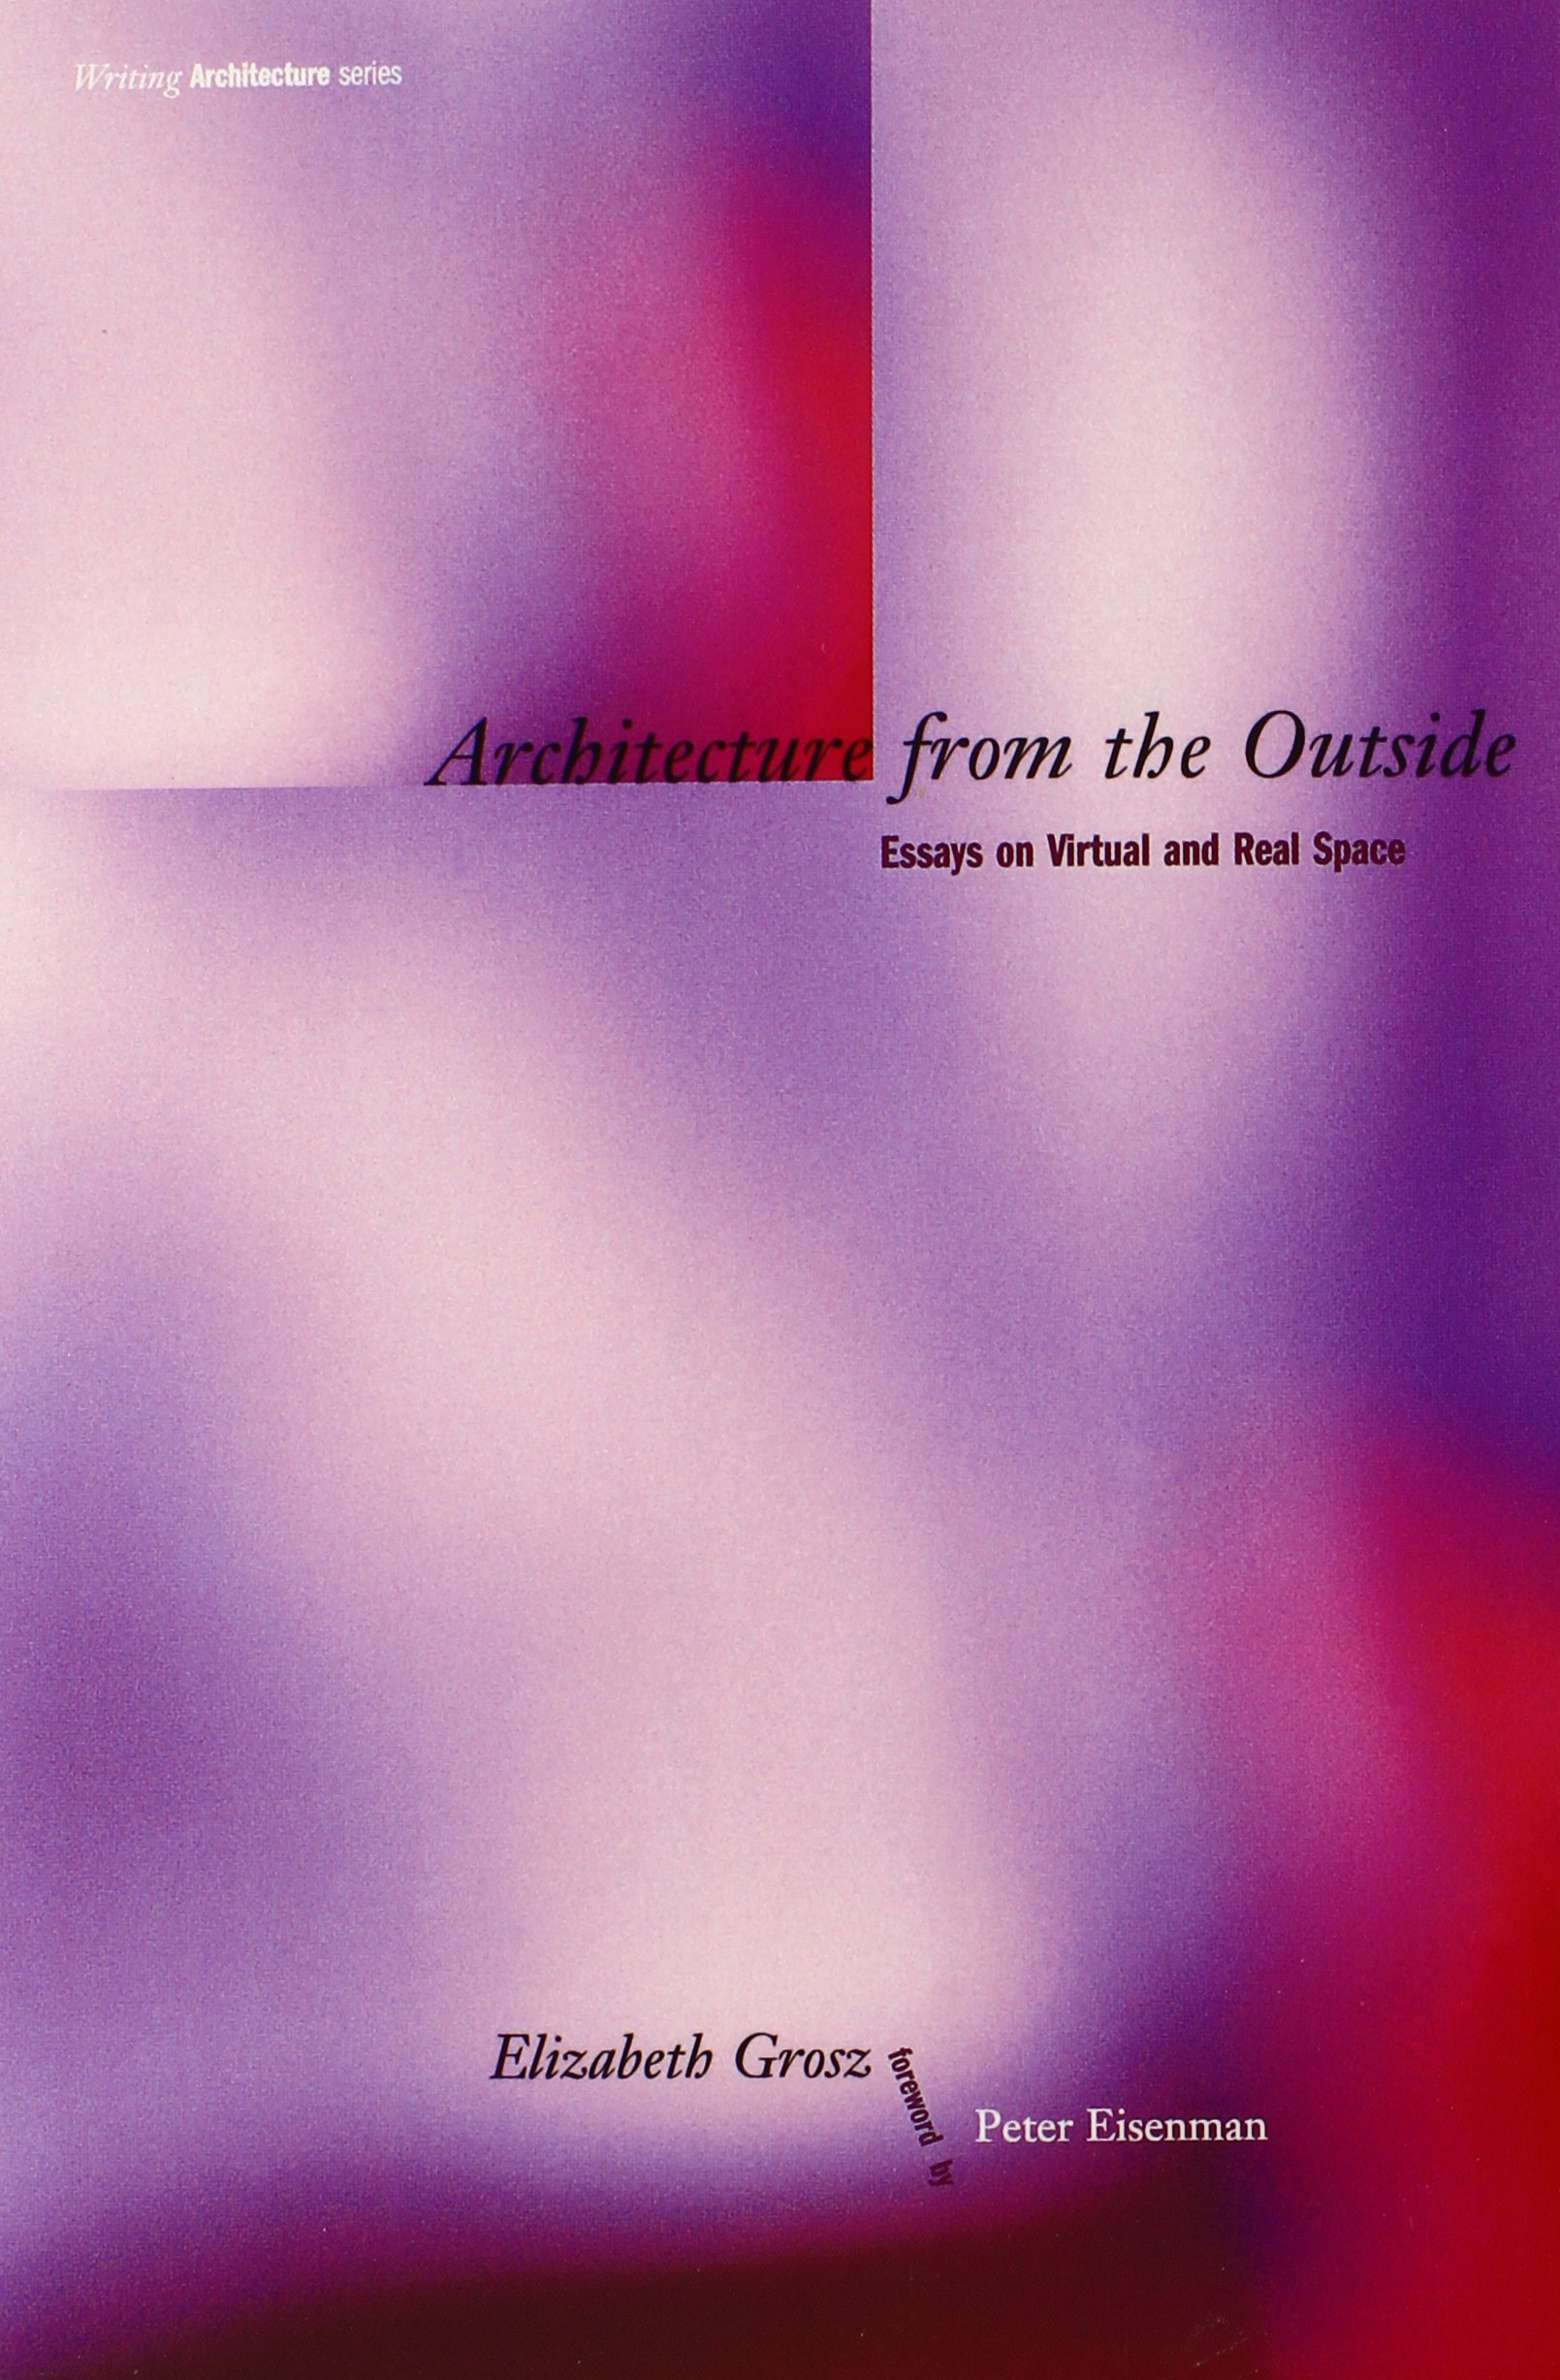 architecture from the outside essays on virtual and real space architecture from the outside essays on virtual and real space writing architecture co uk elizabeth grosz 9780262571494 books